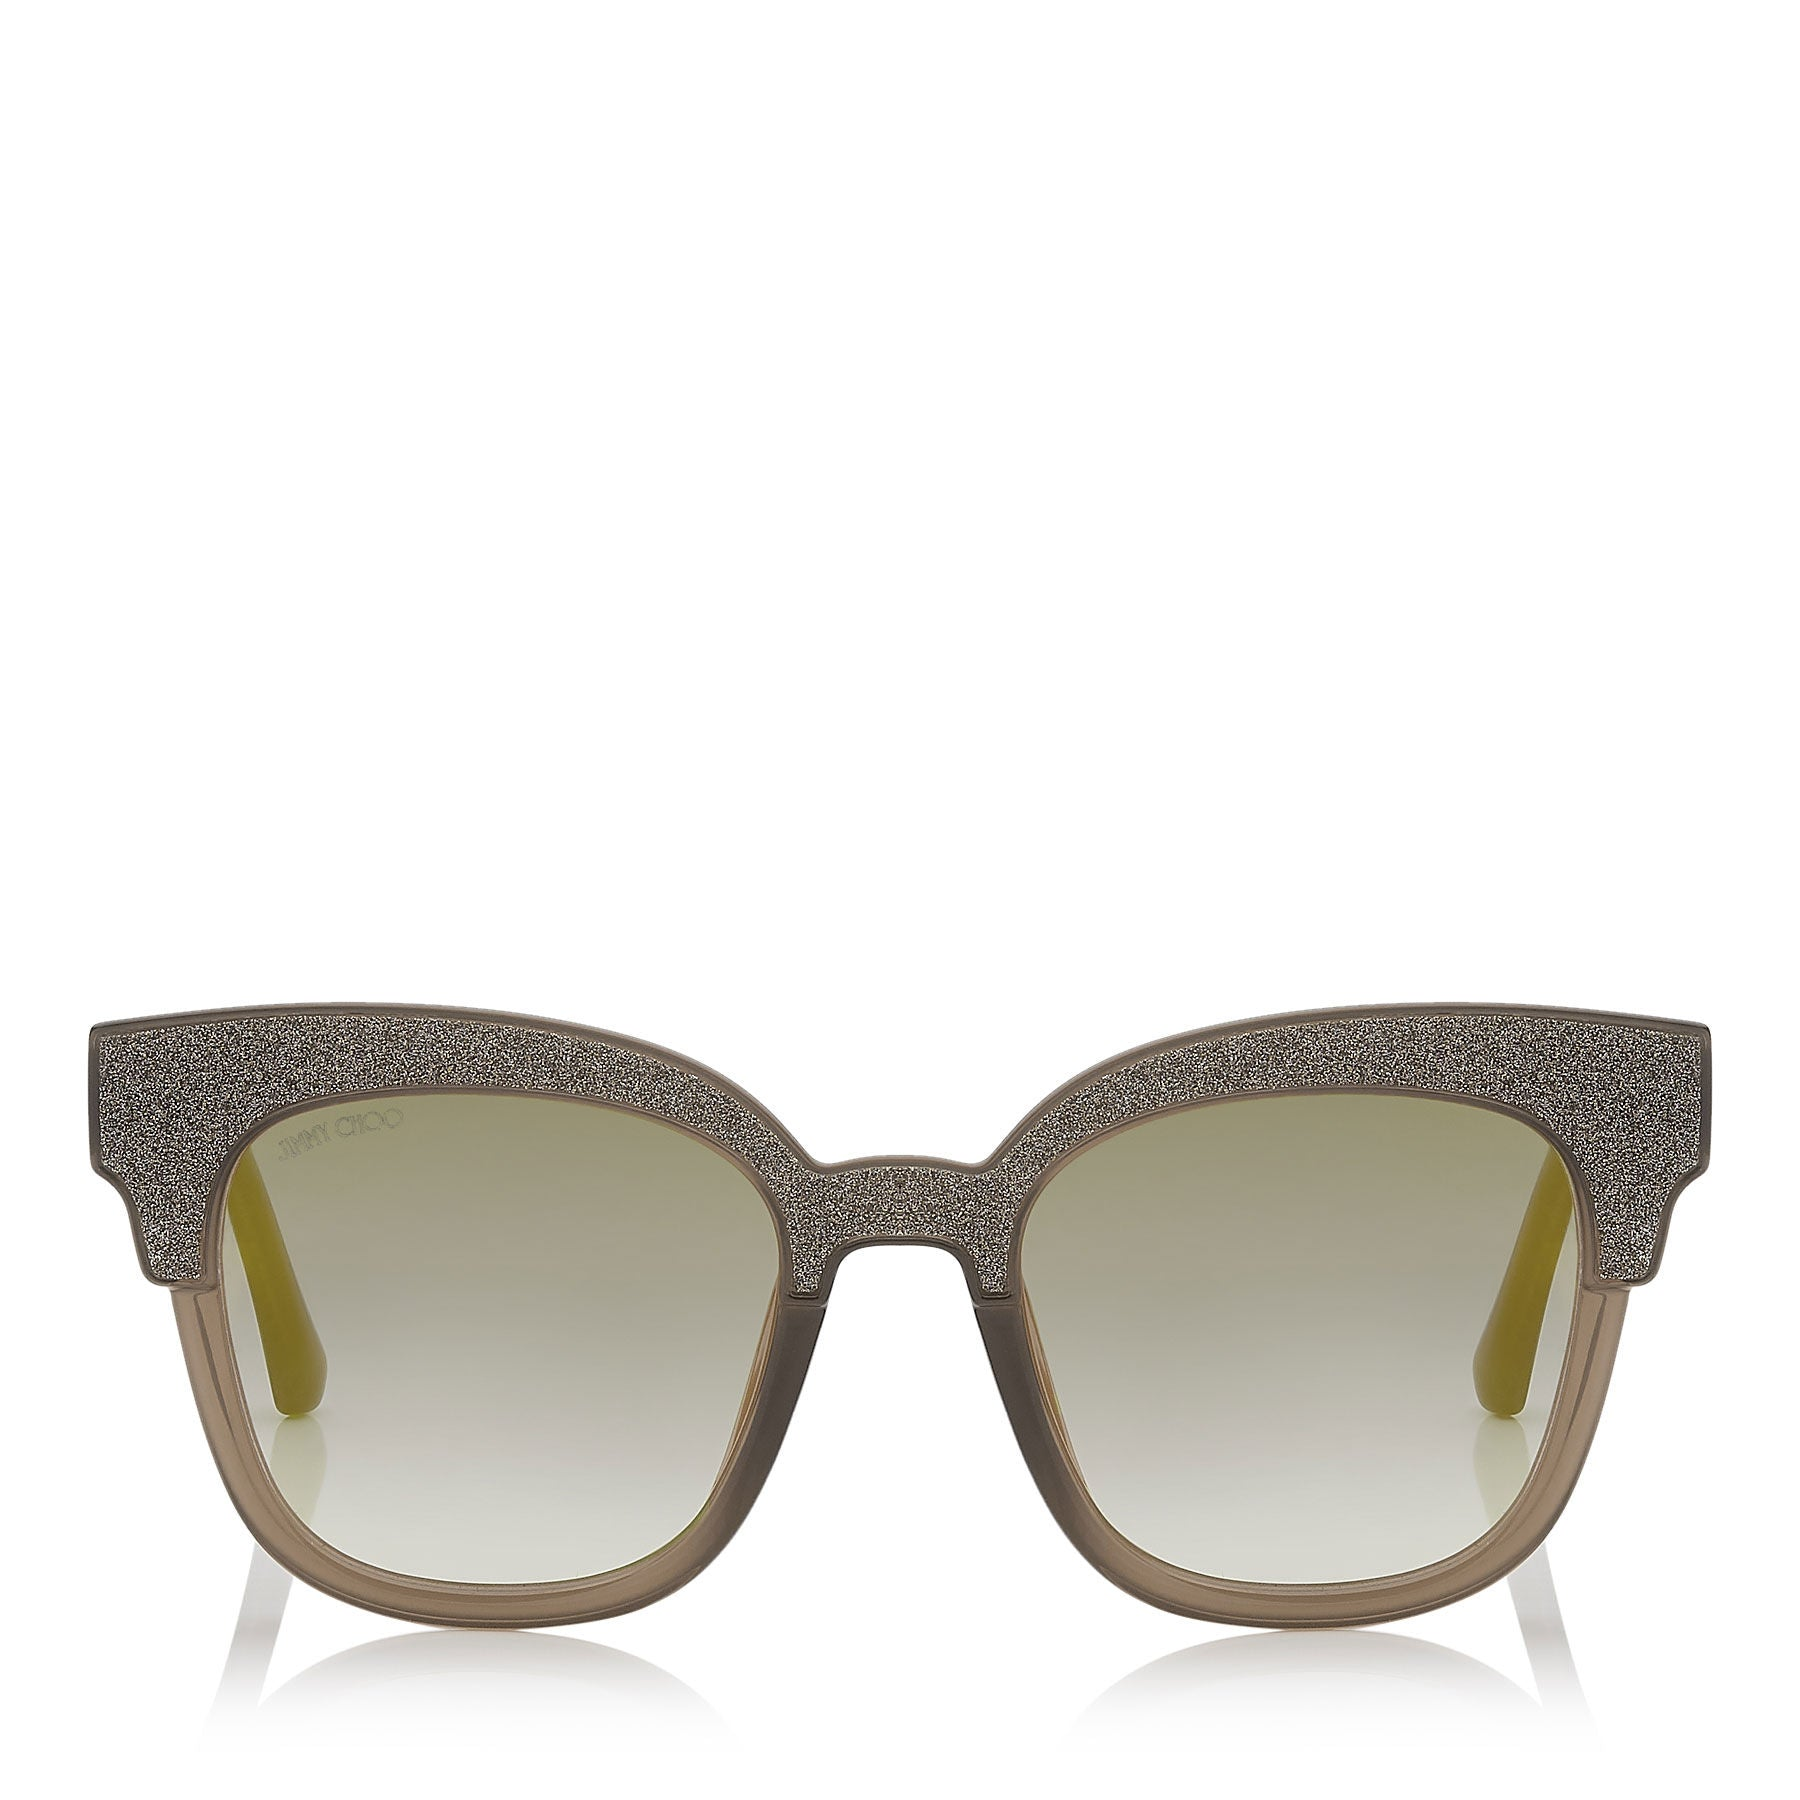 JIMMY CHOO  Mayela Mud Cat-Eye Sunglasses with Mud Crystal Fabric ITEM NO. MAYELAS50E19A